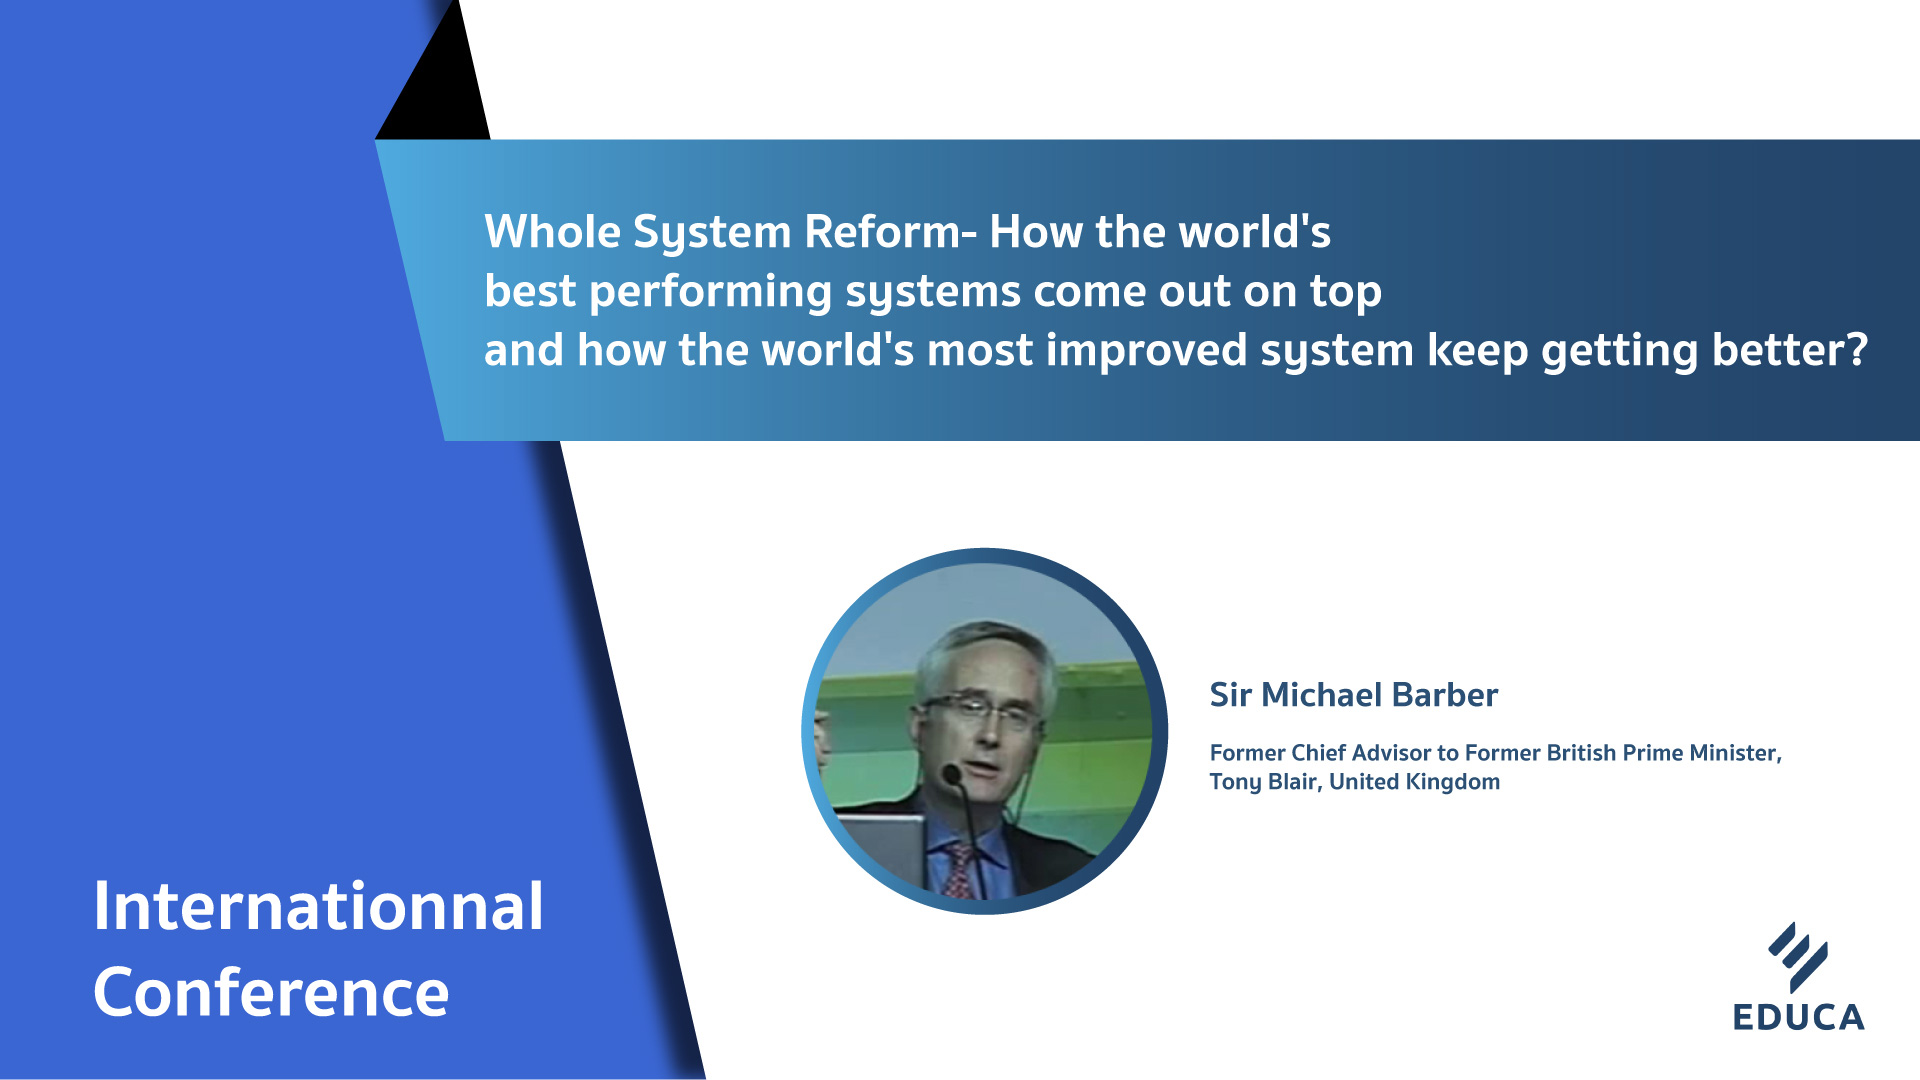 Whole System Reform- How the world's best performing systems come out on top and how the world's most improved system keep getting better?